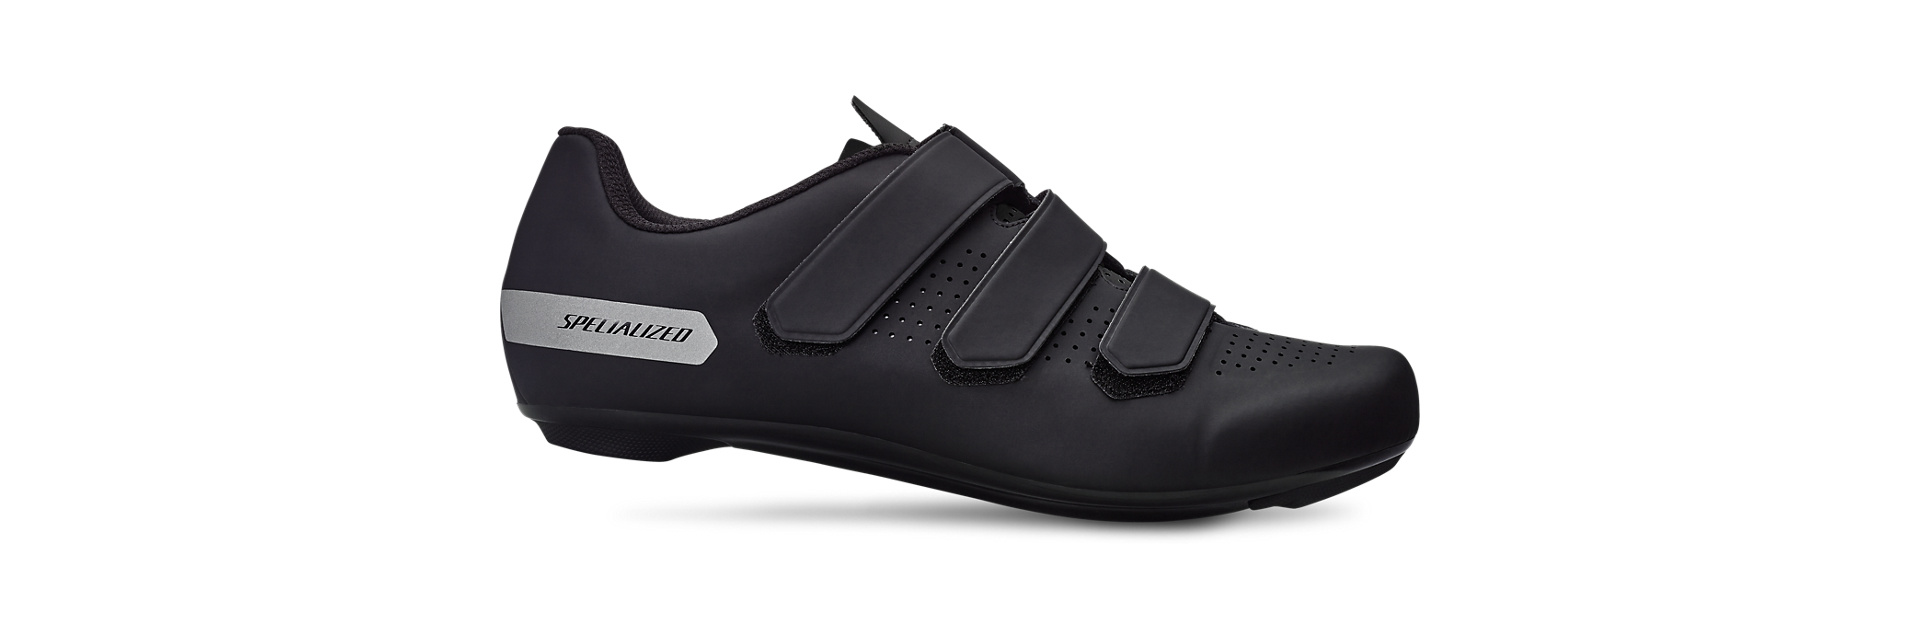 Specialized SBC Torch 1.0 Road Shoe Black 46